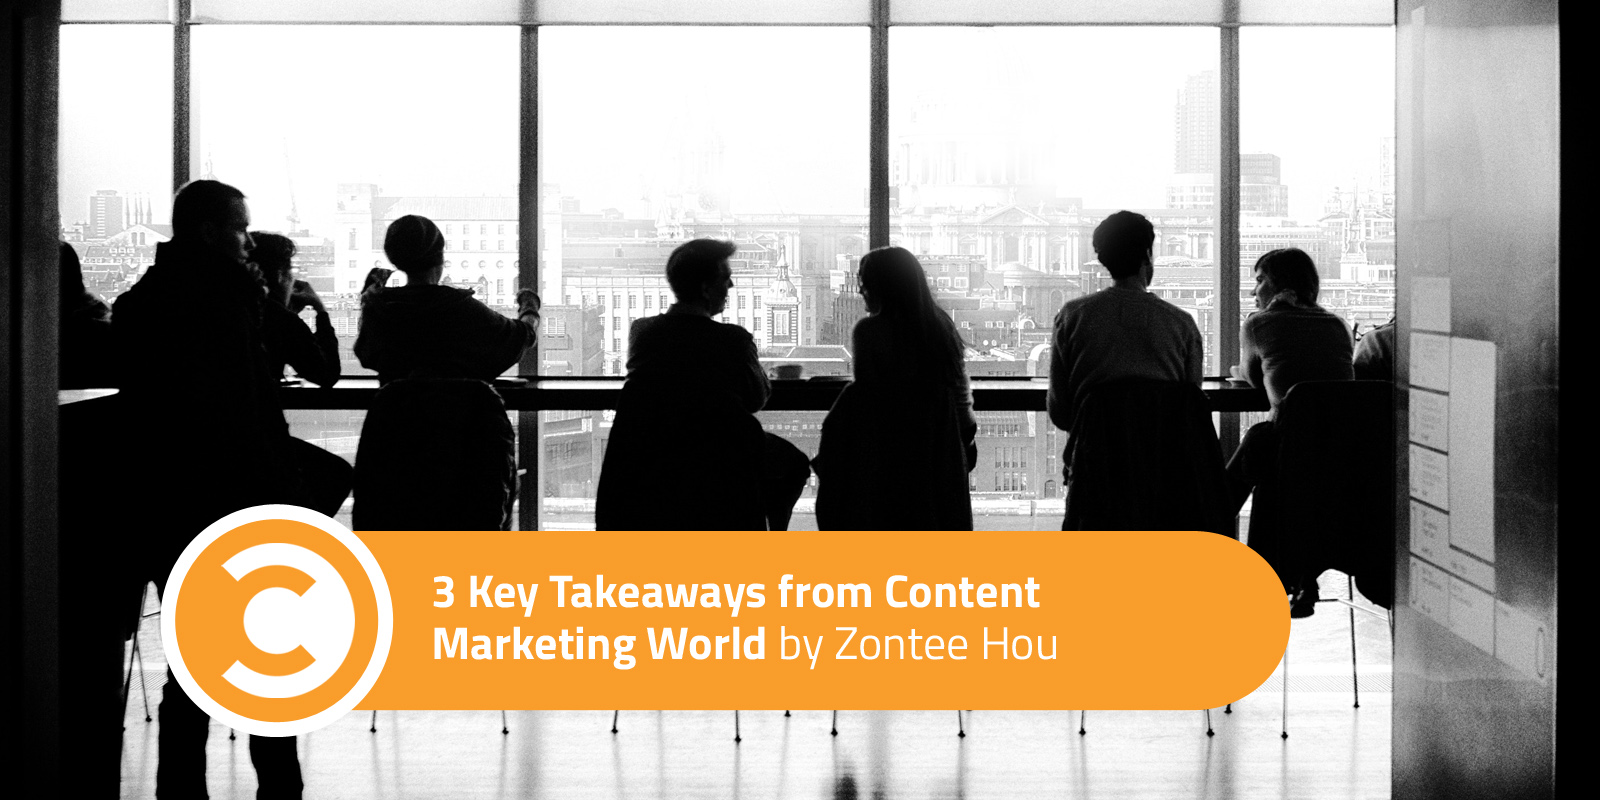 What's Next in Content Marketing? 3 Key Takeaways from Content Marketing World | Convince and Convert: Social Media Consulting and Content Marketing Consulting